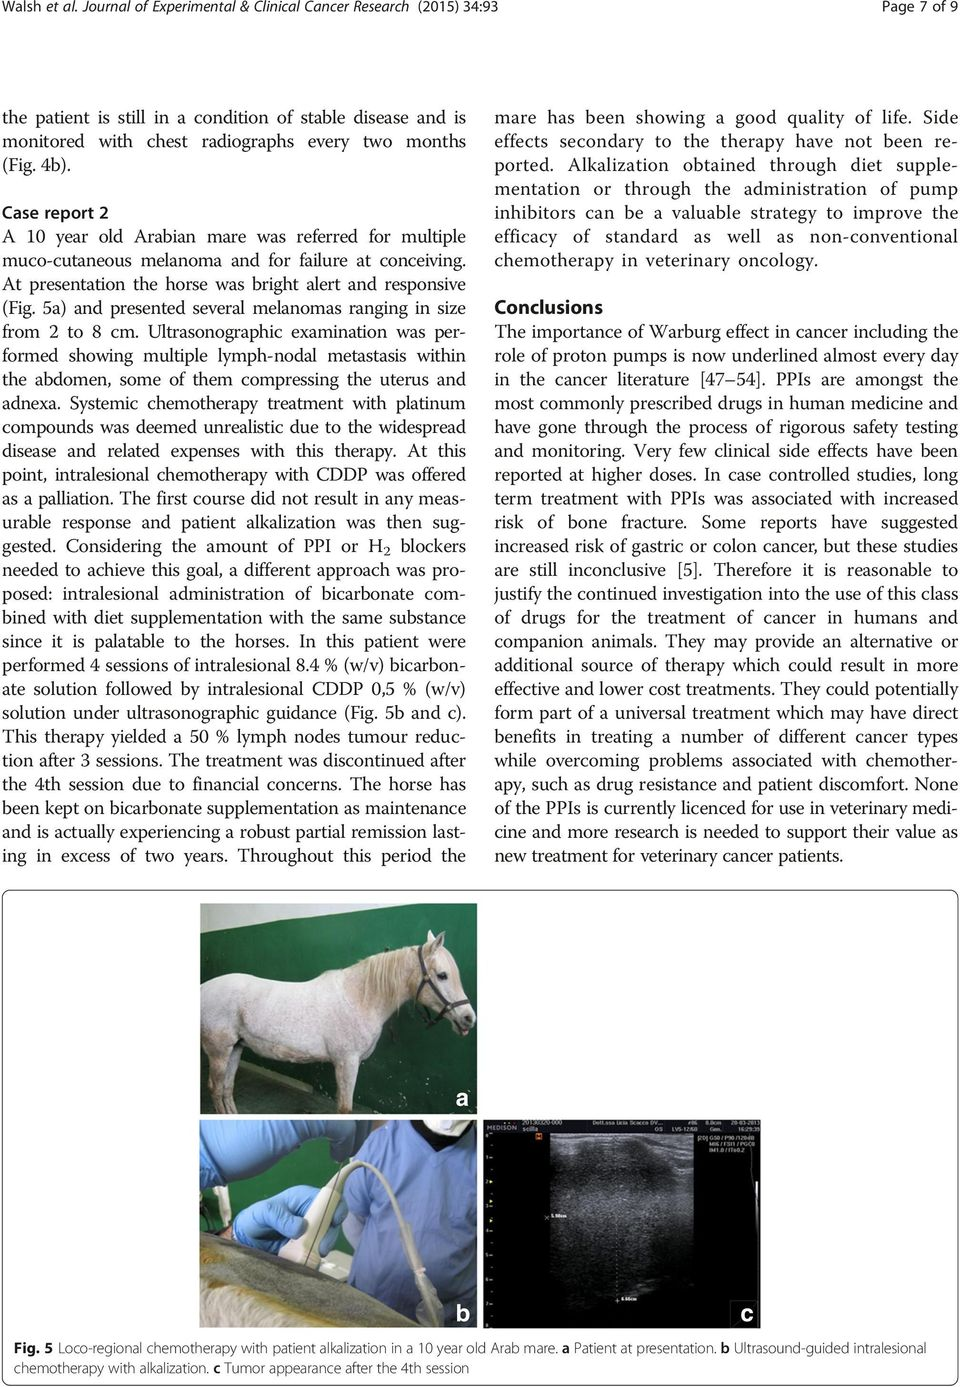 Case report 2 A 10 year old Arabian mare was referred for multiple muco-cutaneous melanoma and for failure at conceiving. At presentation the horse was bright alert and responsive (Fig.